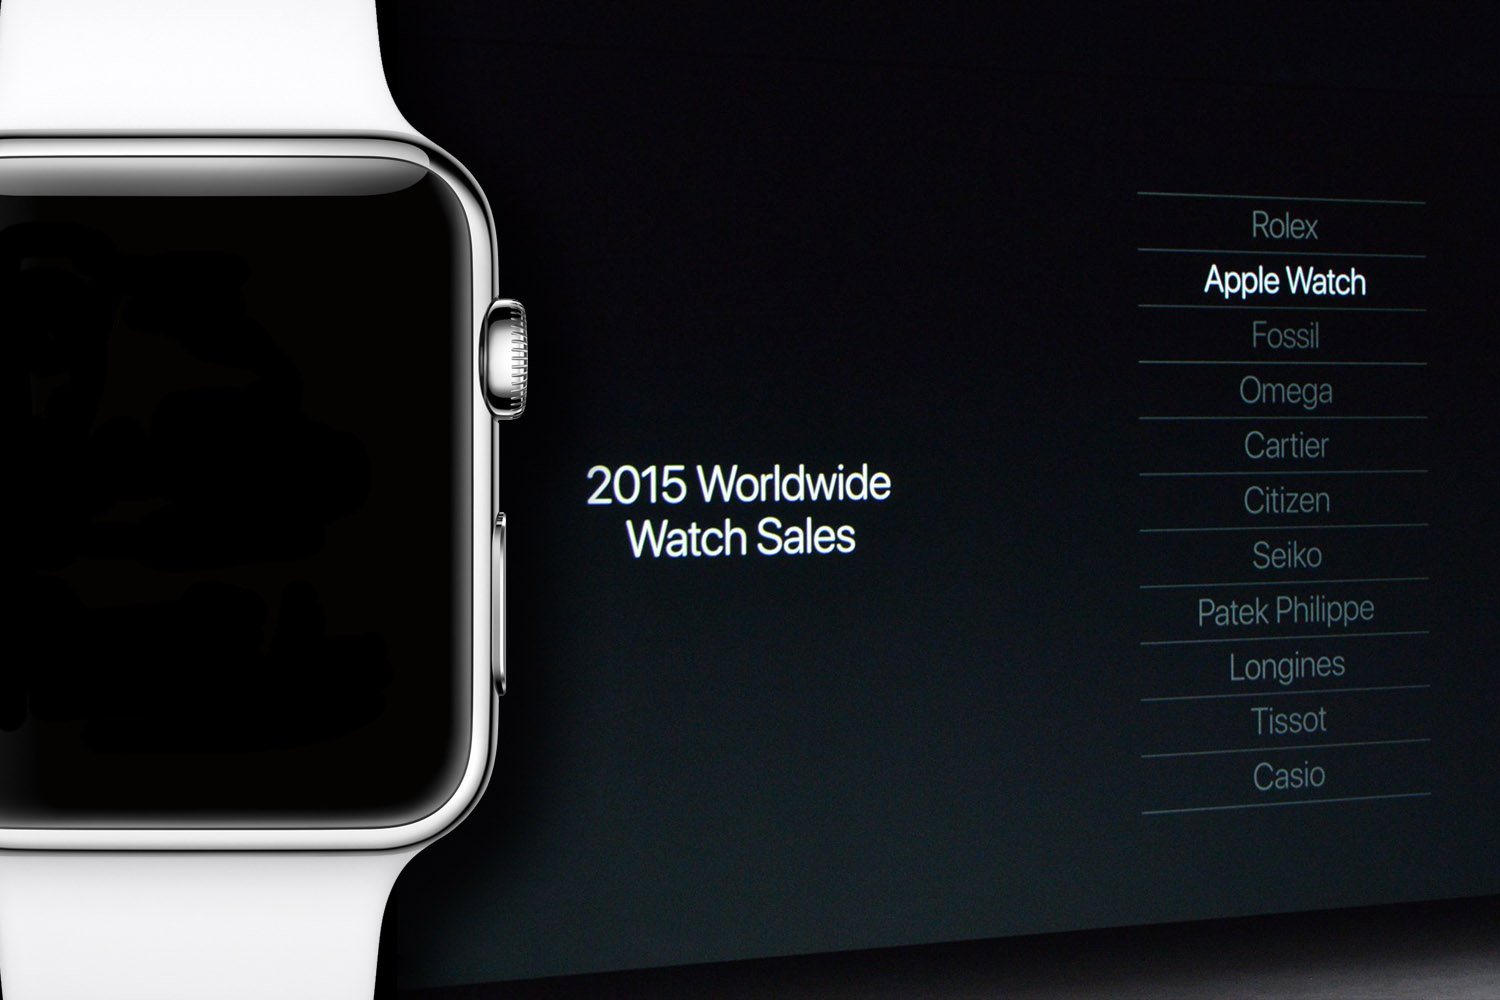 swiss-watch-industry-vs-smart-watches-and-apple-watch-2